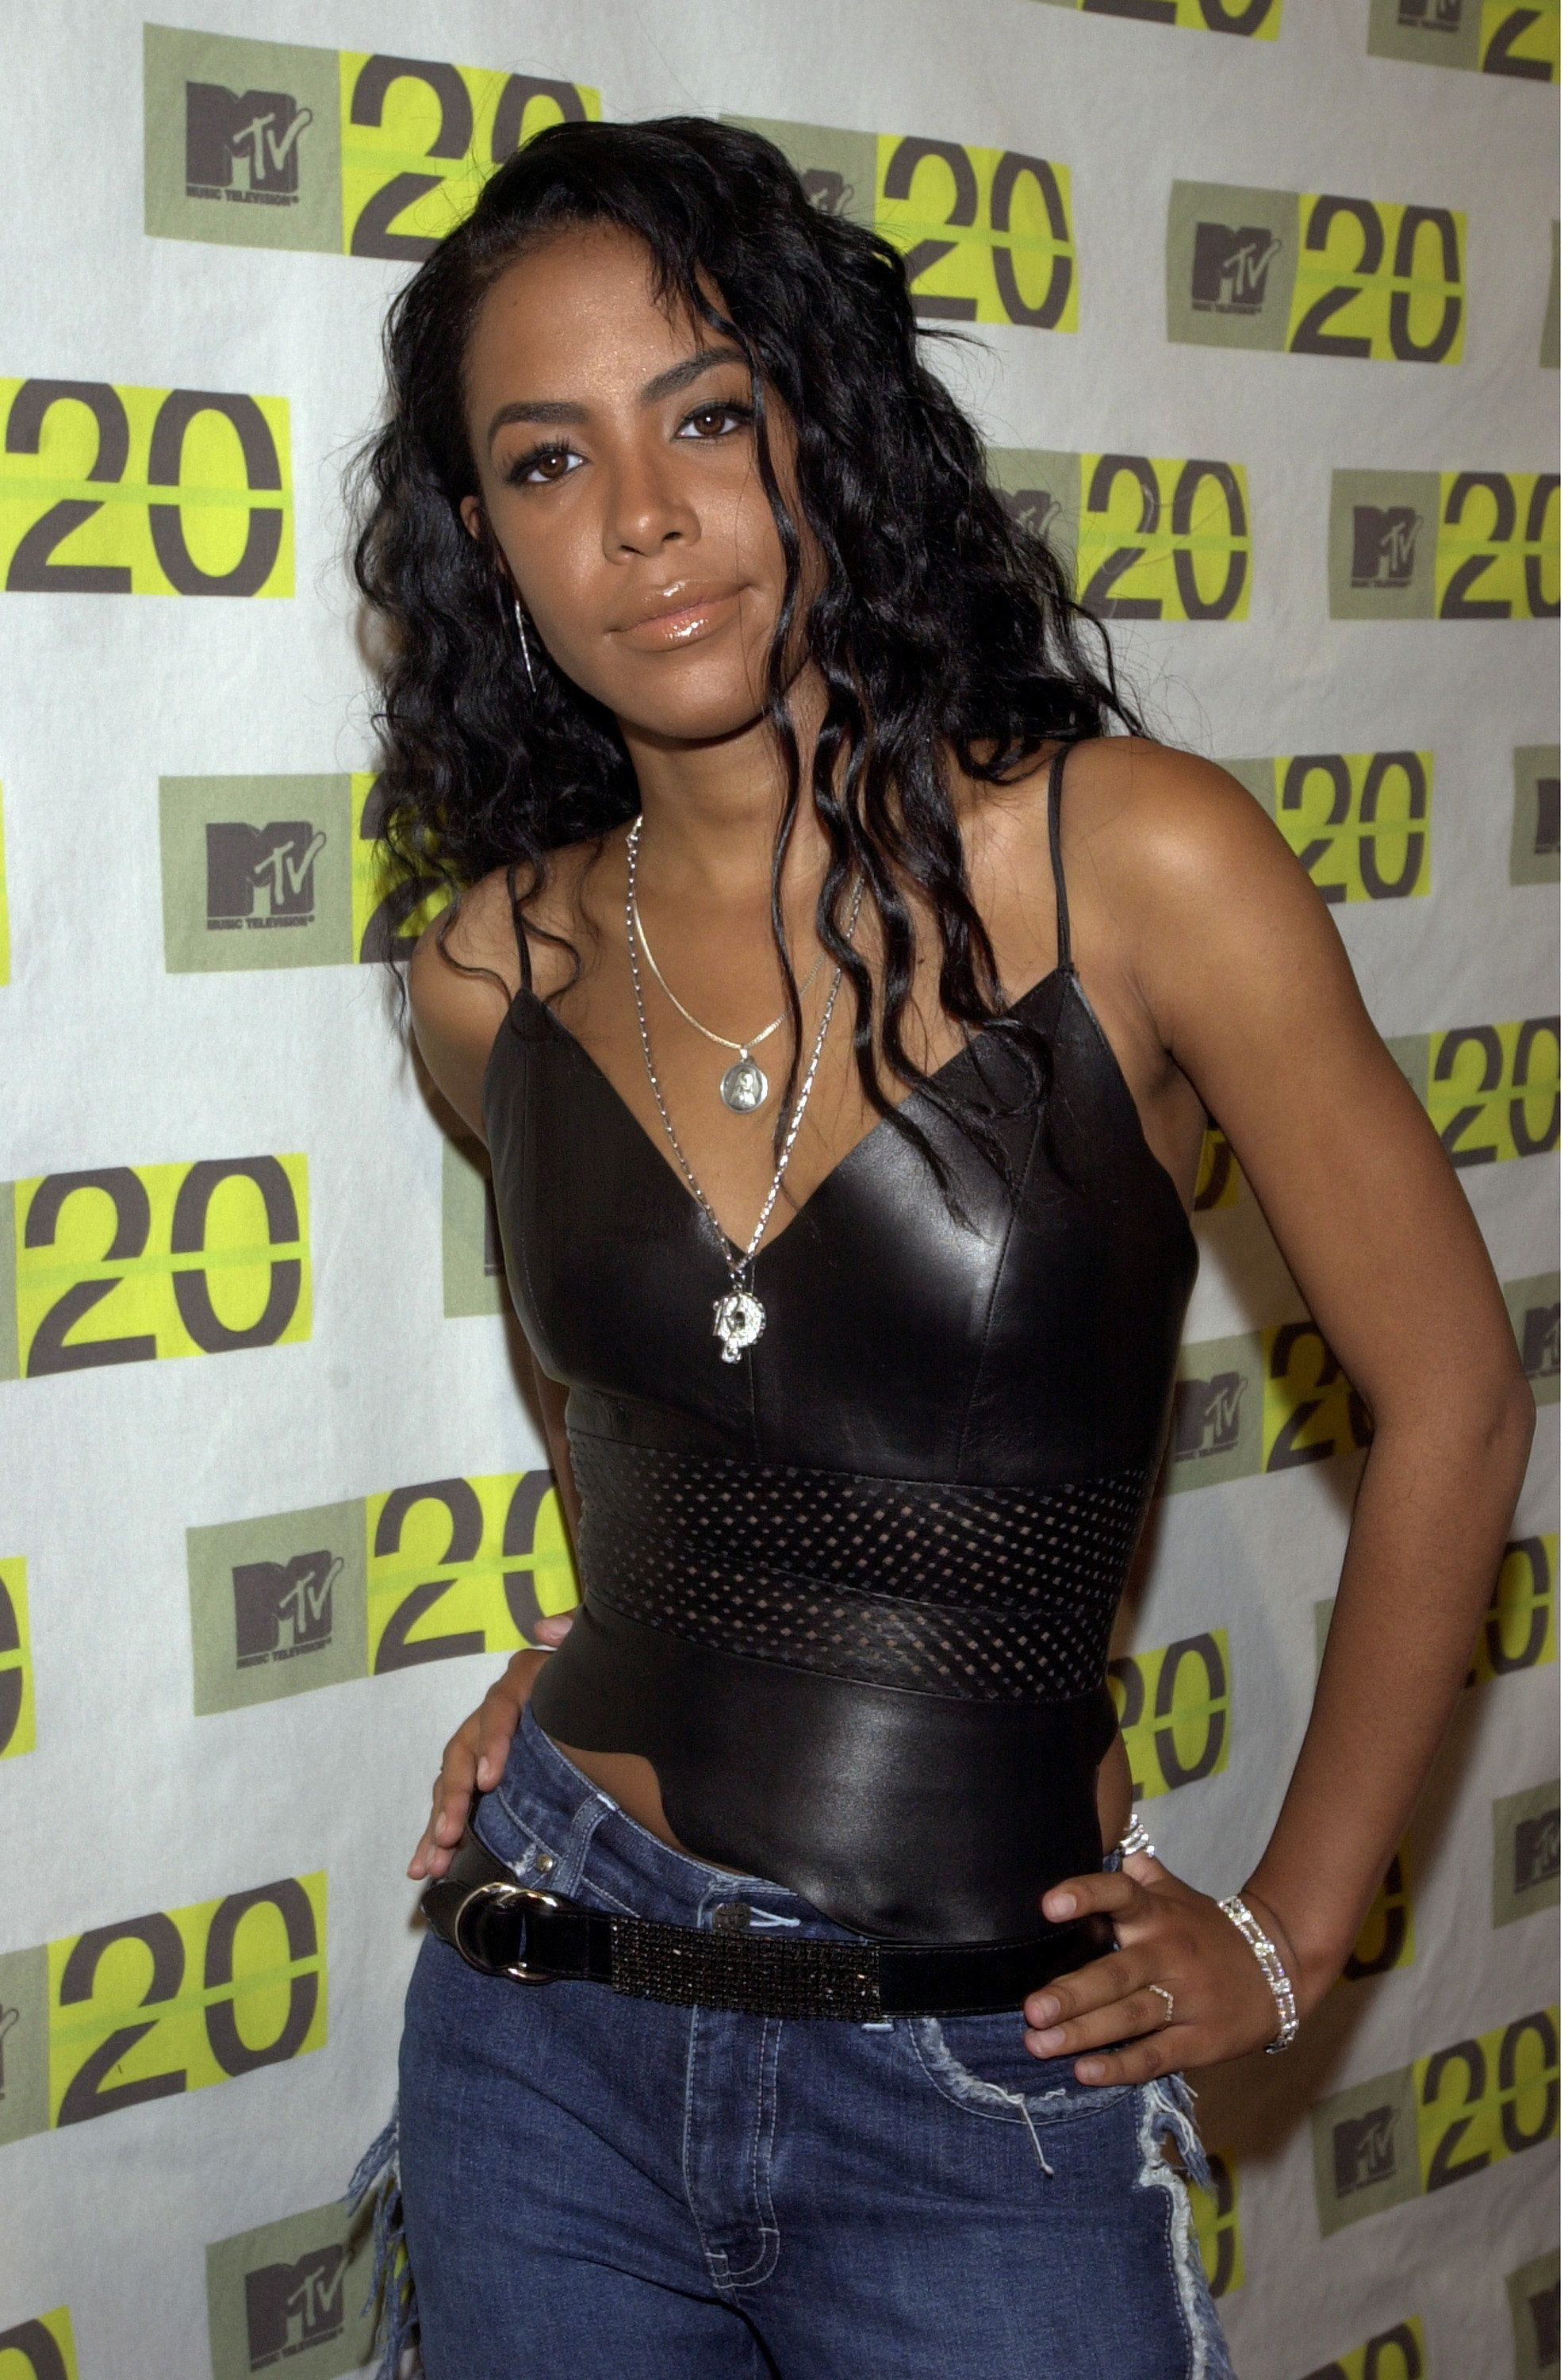 Fans Honor The Late Artist Aaliyah On What Would Have Been ...